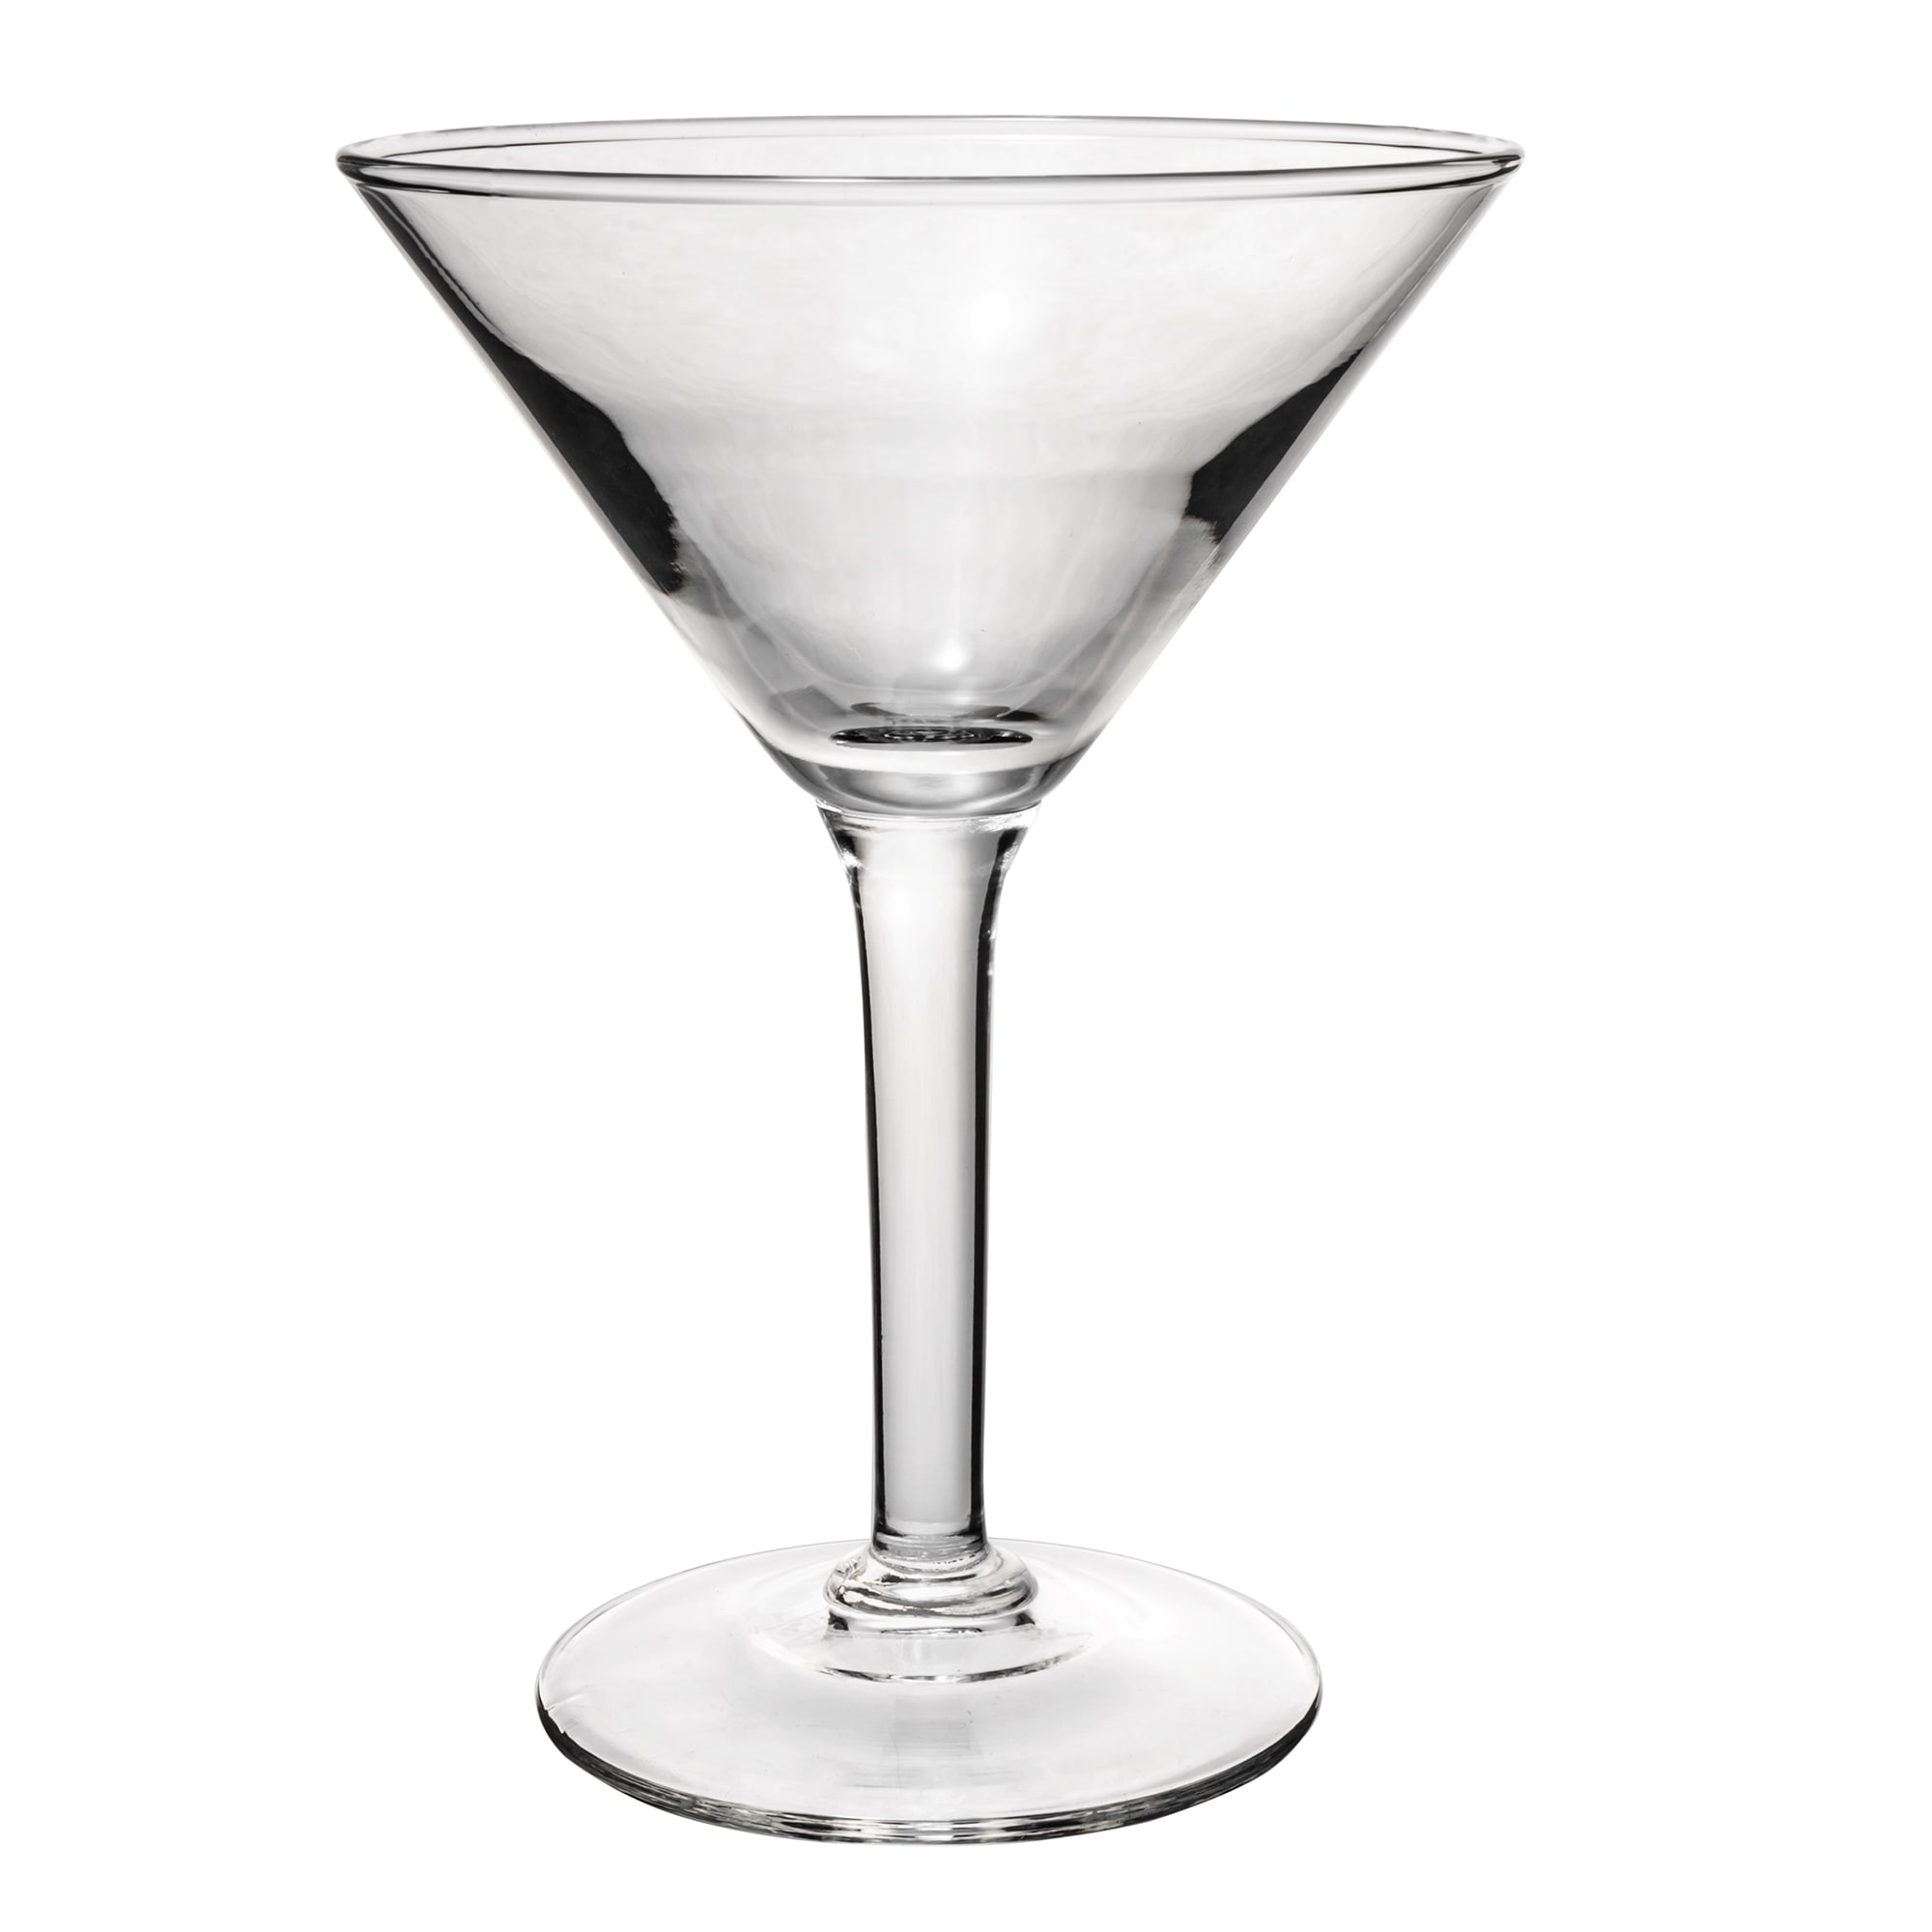 Libbey 8455 6-oz Citation Cocktail Glass - Safedge Rim Guarantee